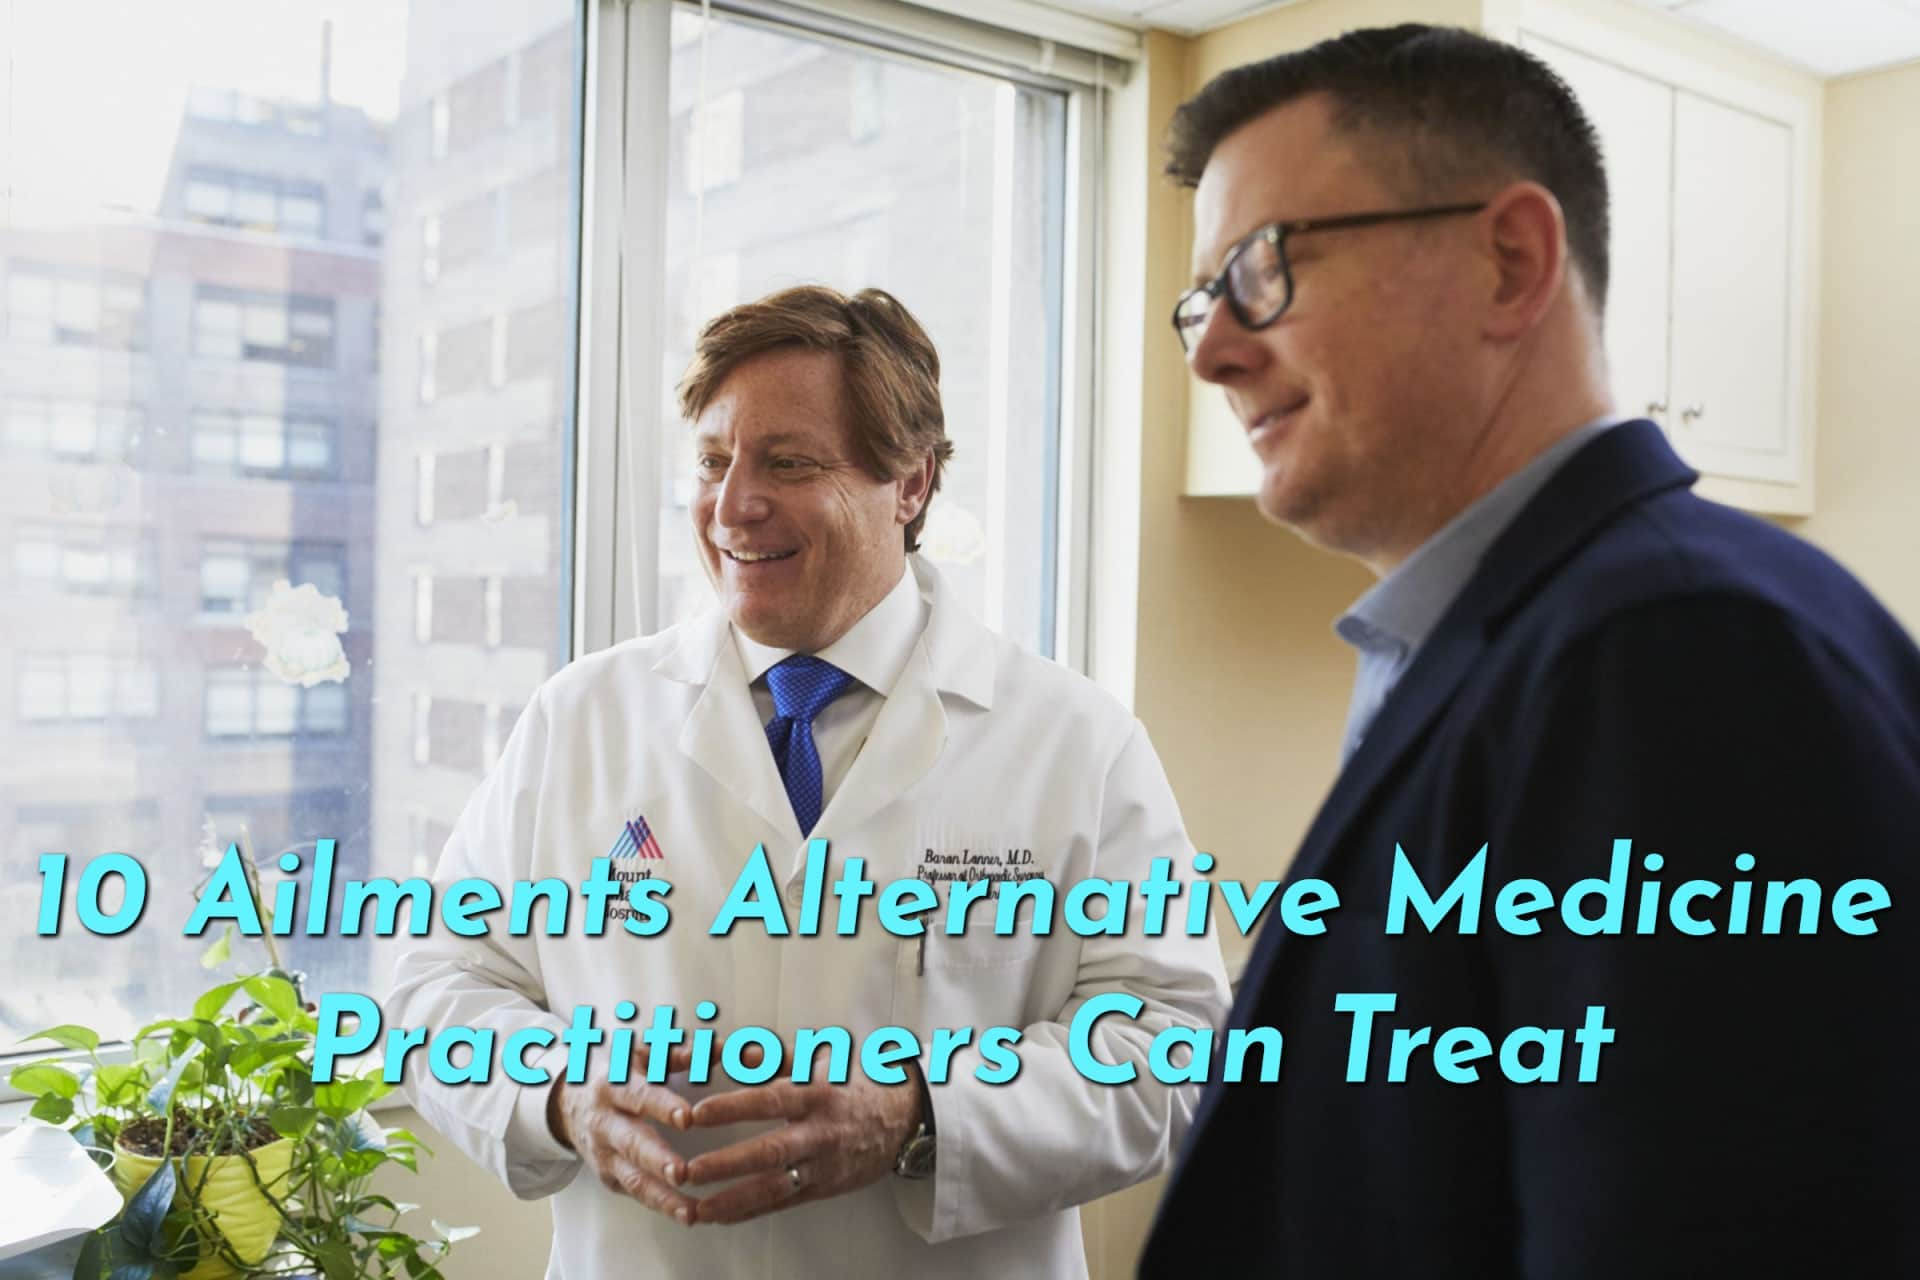 10 Things an Alternative Medicine Practitioner Can Treat - Two men standing bedside